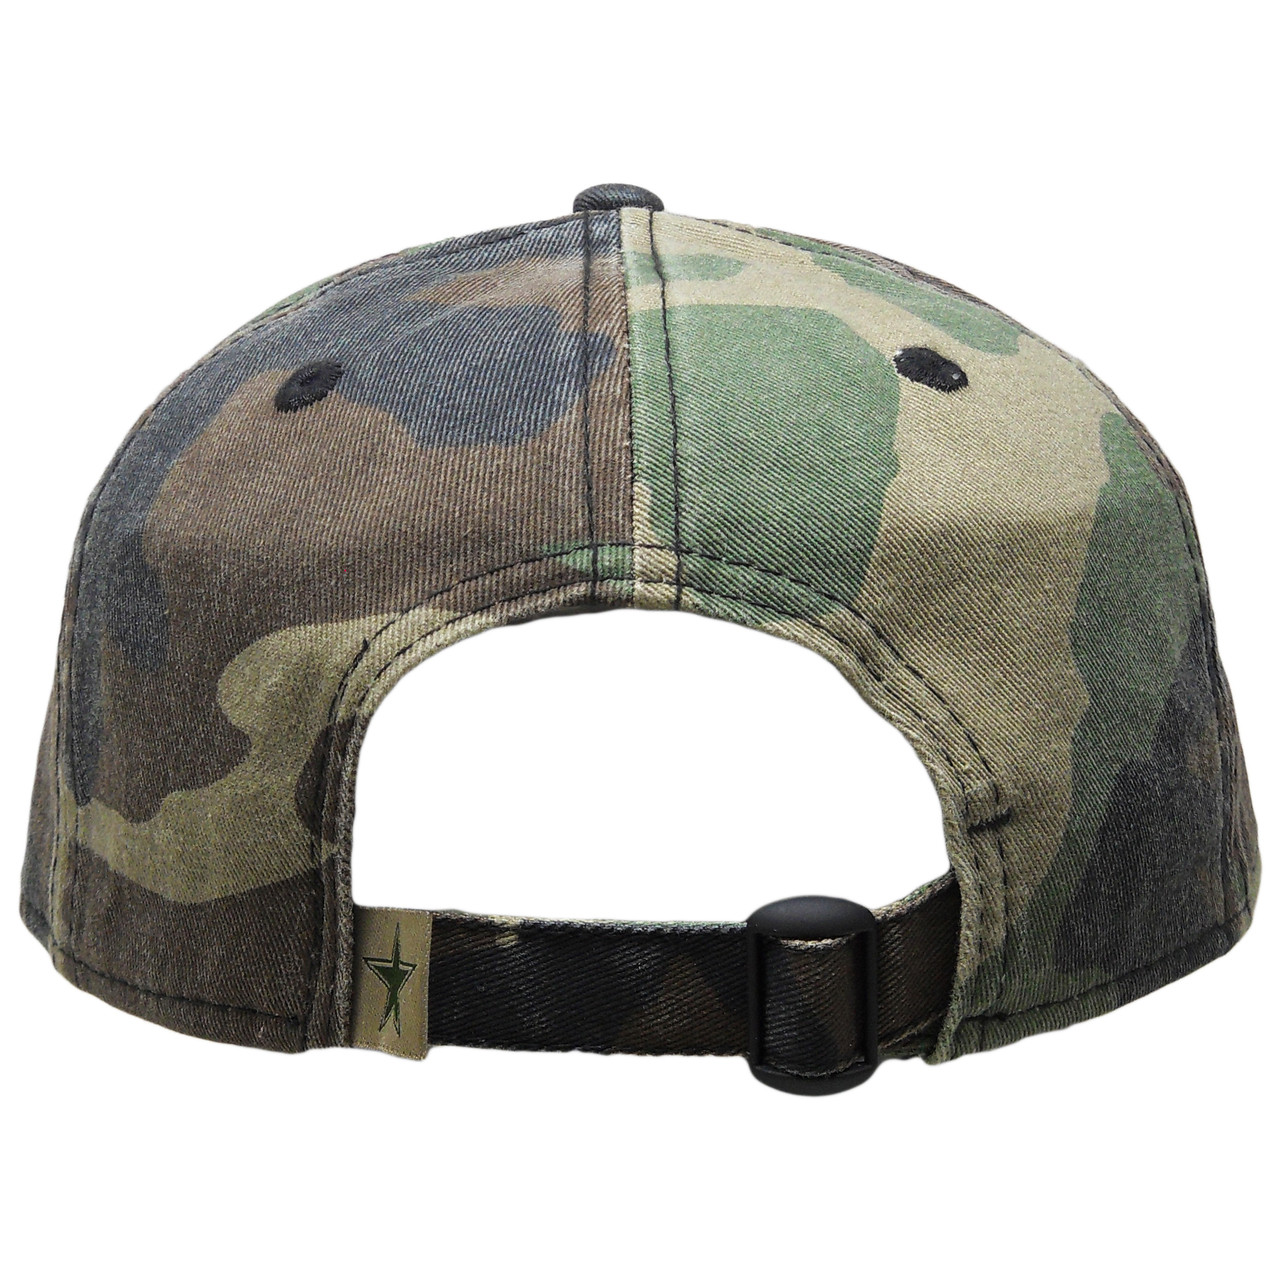 b2df8a65ebb9e Dallas Cowboys New Era Core Classic 9Twenty Adjustable Hat - Camouflage -  ECapsUnlimited.com